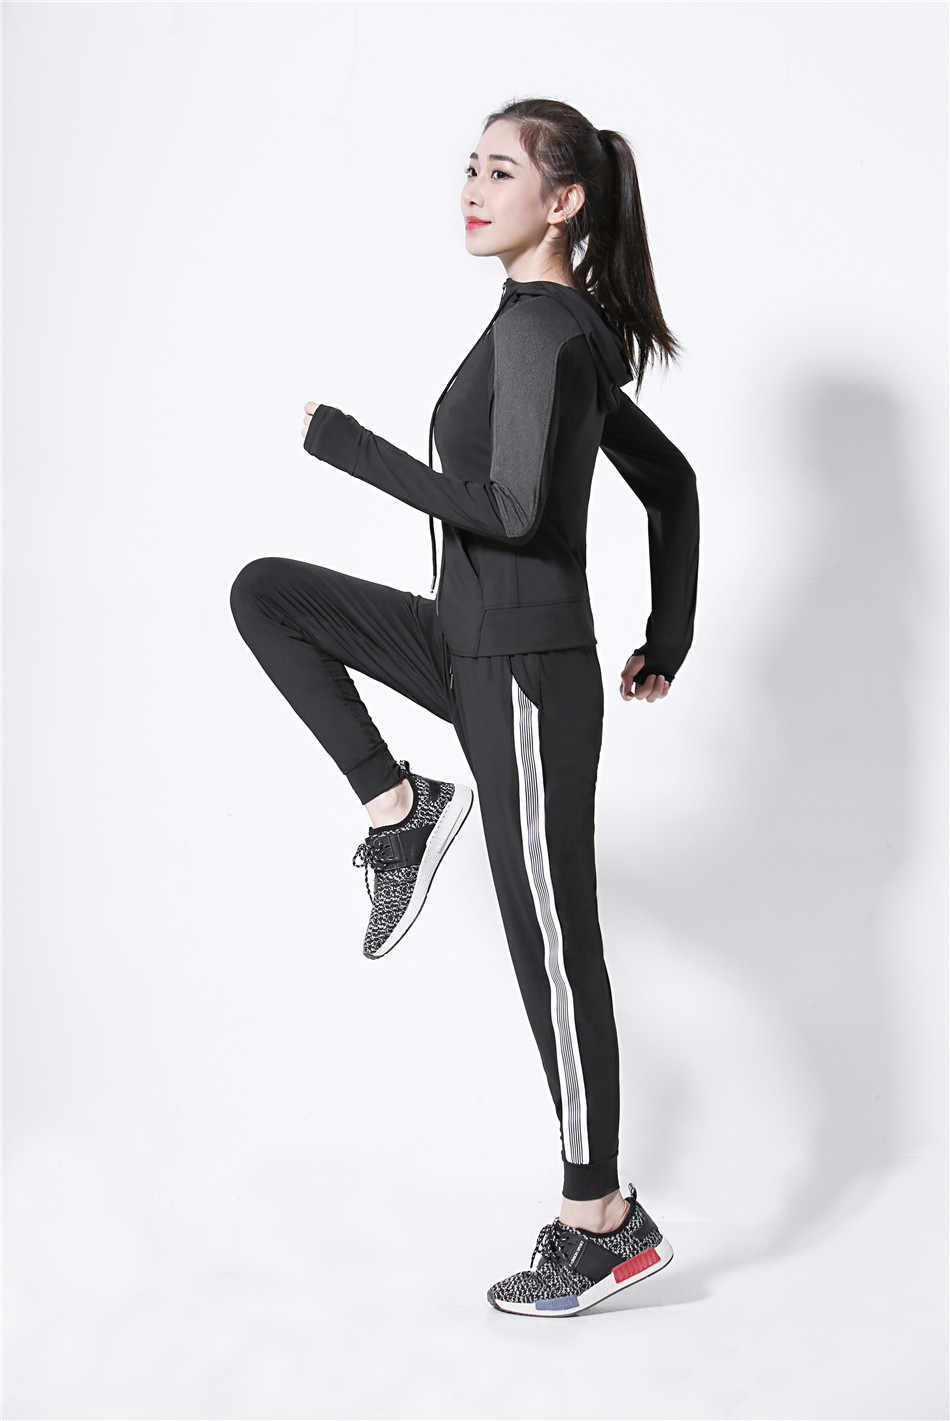 Women's Jackets 2018 New Long Sleeve Running Coat Yoga Gym Fitness Tight Tops Quick-Dry Breathable Sports Jacket Women 8